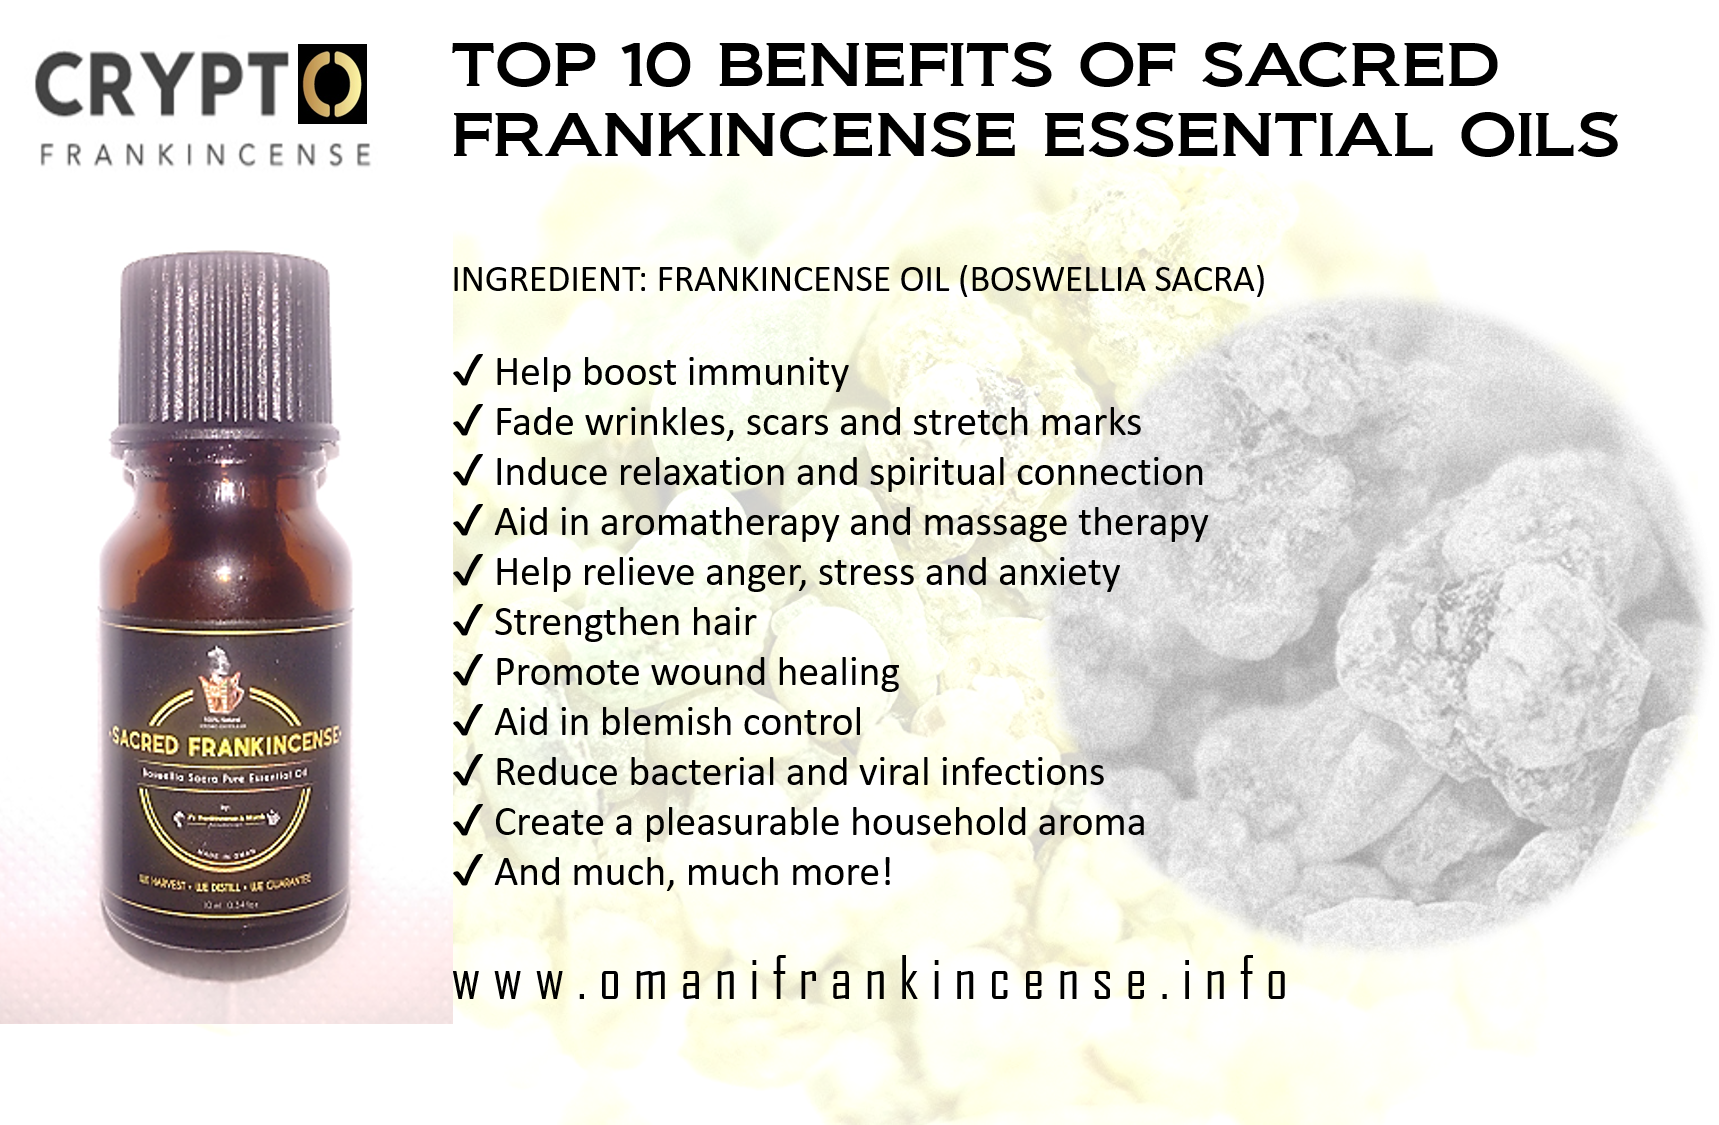 10ML OMANI SACRED FRANKINCENSE PURE ESSENTIAL OIL - Boswellia Sacra - Free  Shipping